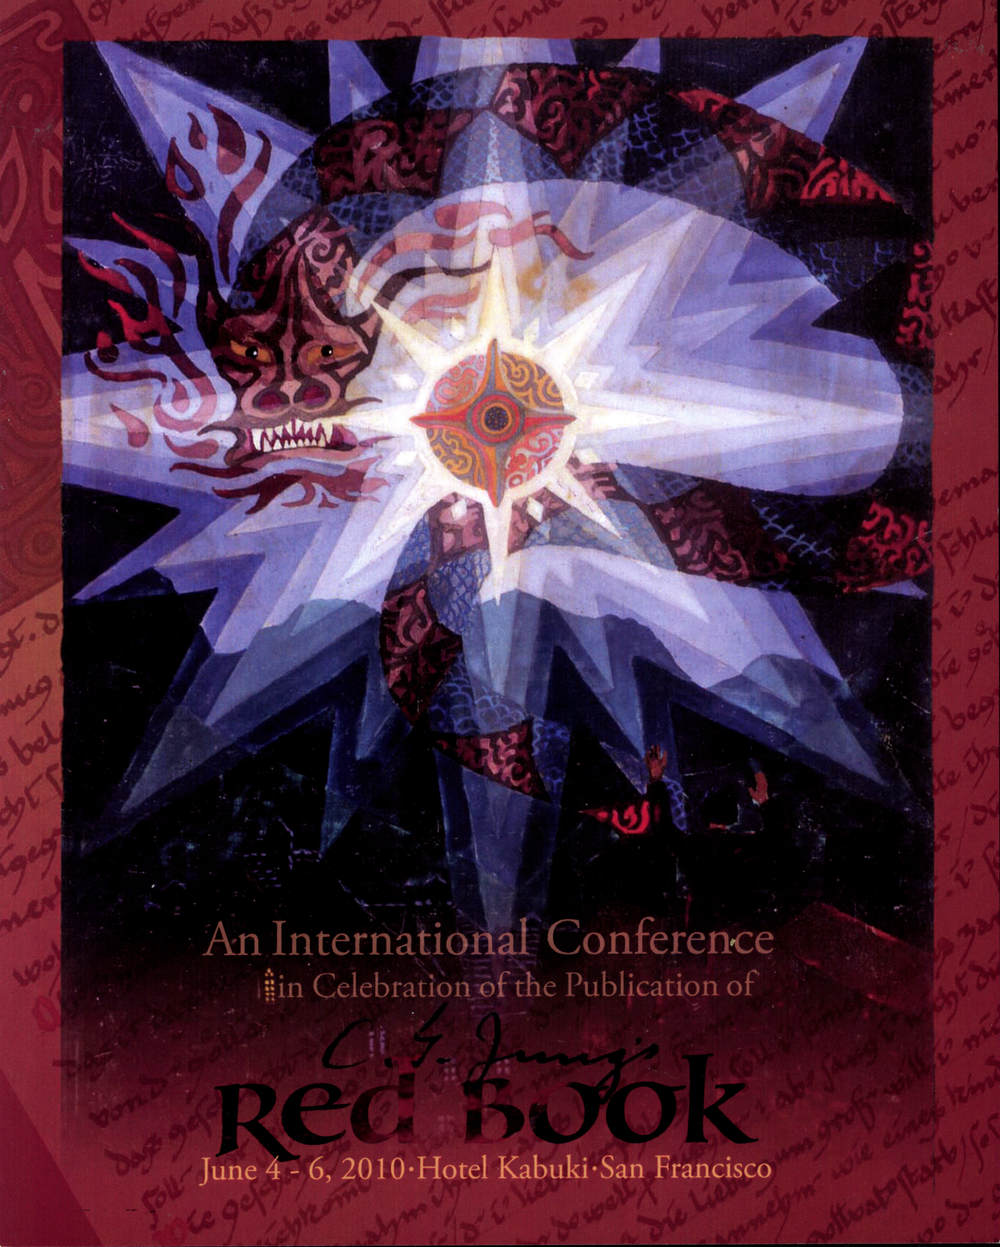 Red Book Conference flyer (2010)